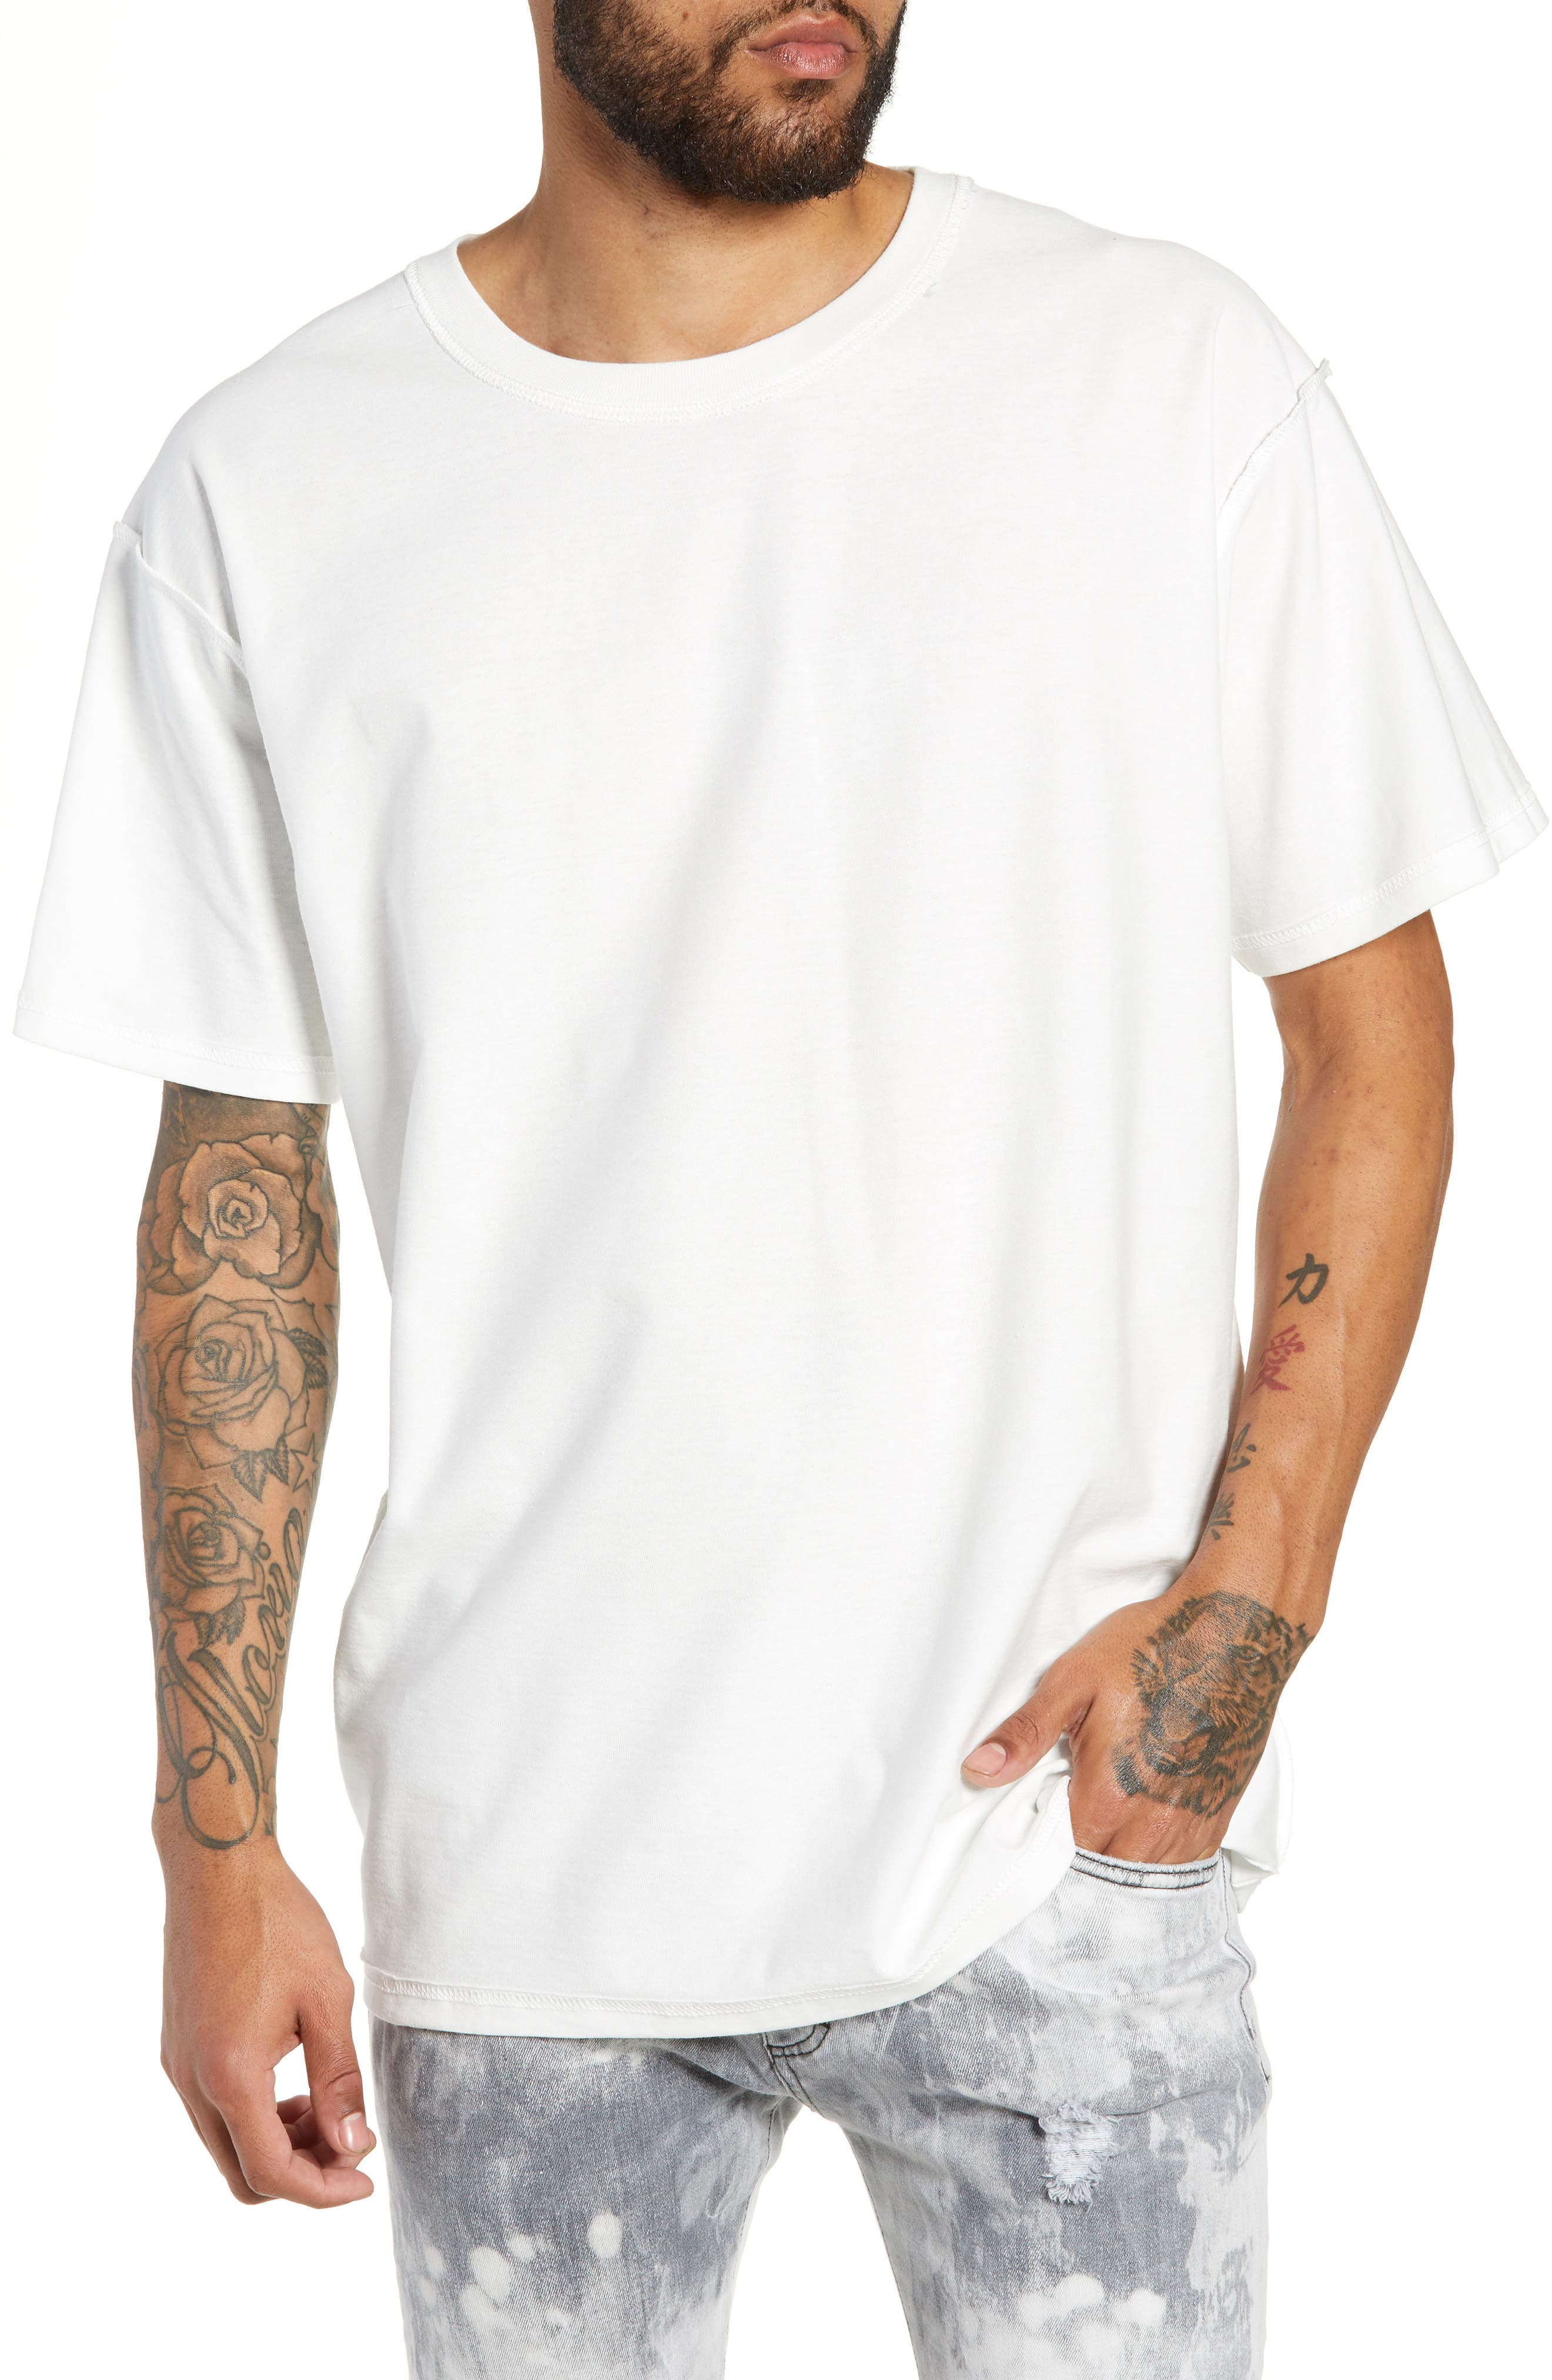 Stand Firm Tour T-Shirt,                         Main,                         color, WHITE